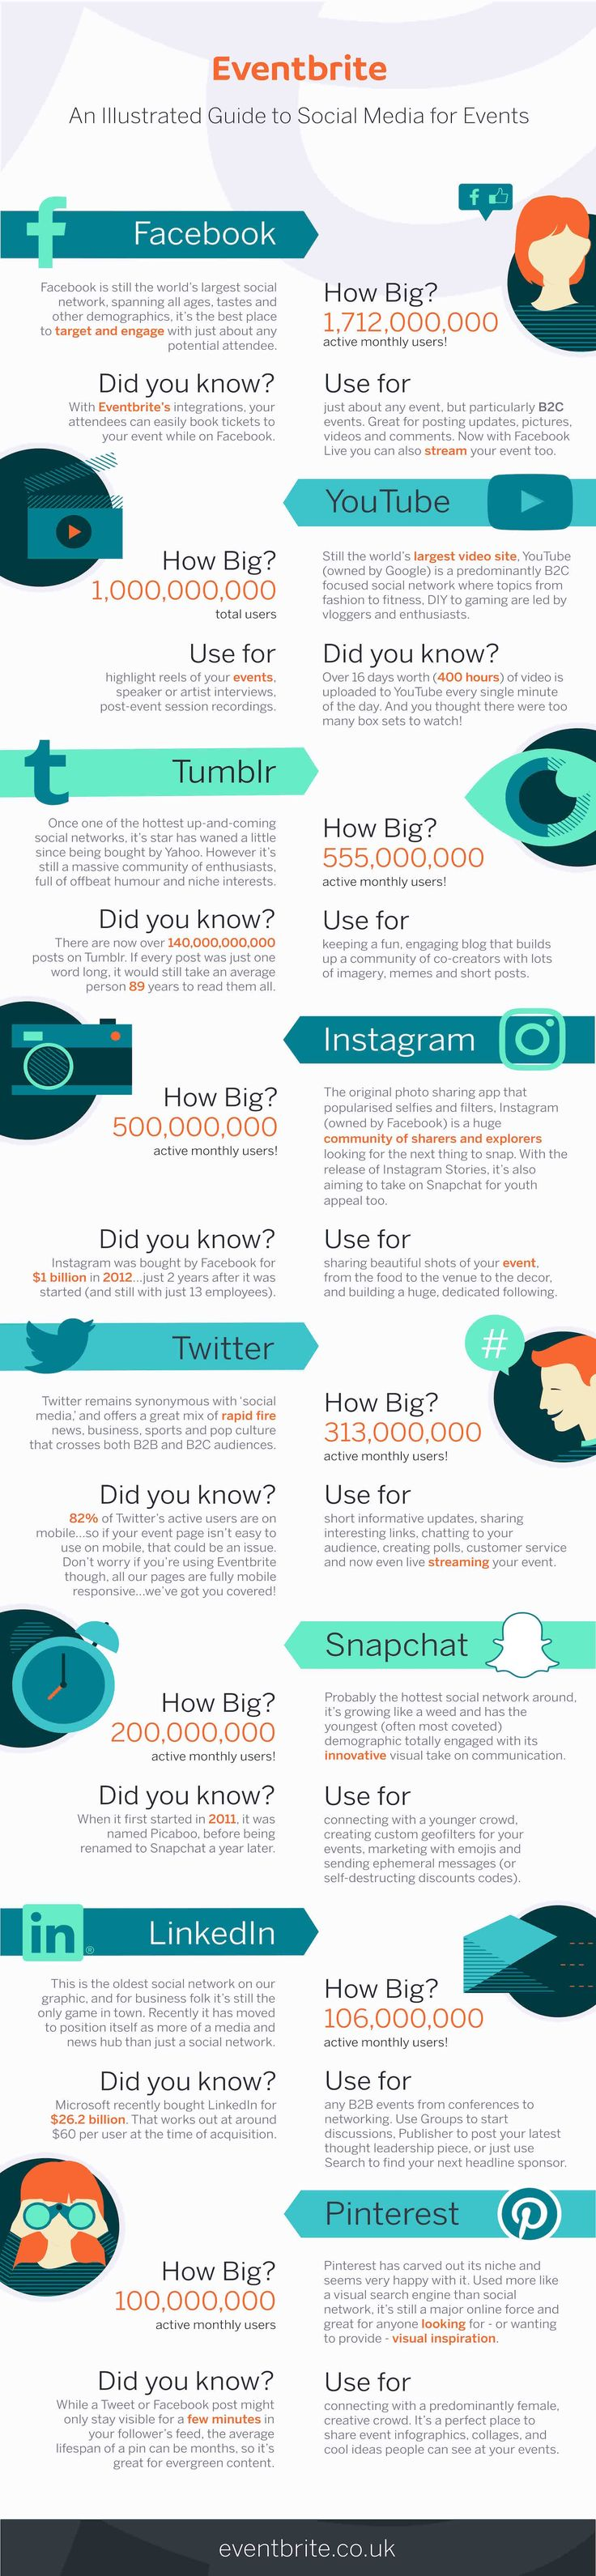 An Illustrated Guide to Social Media for Events - #infographic